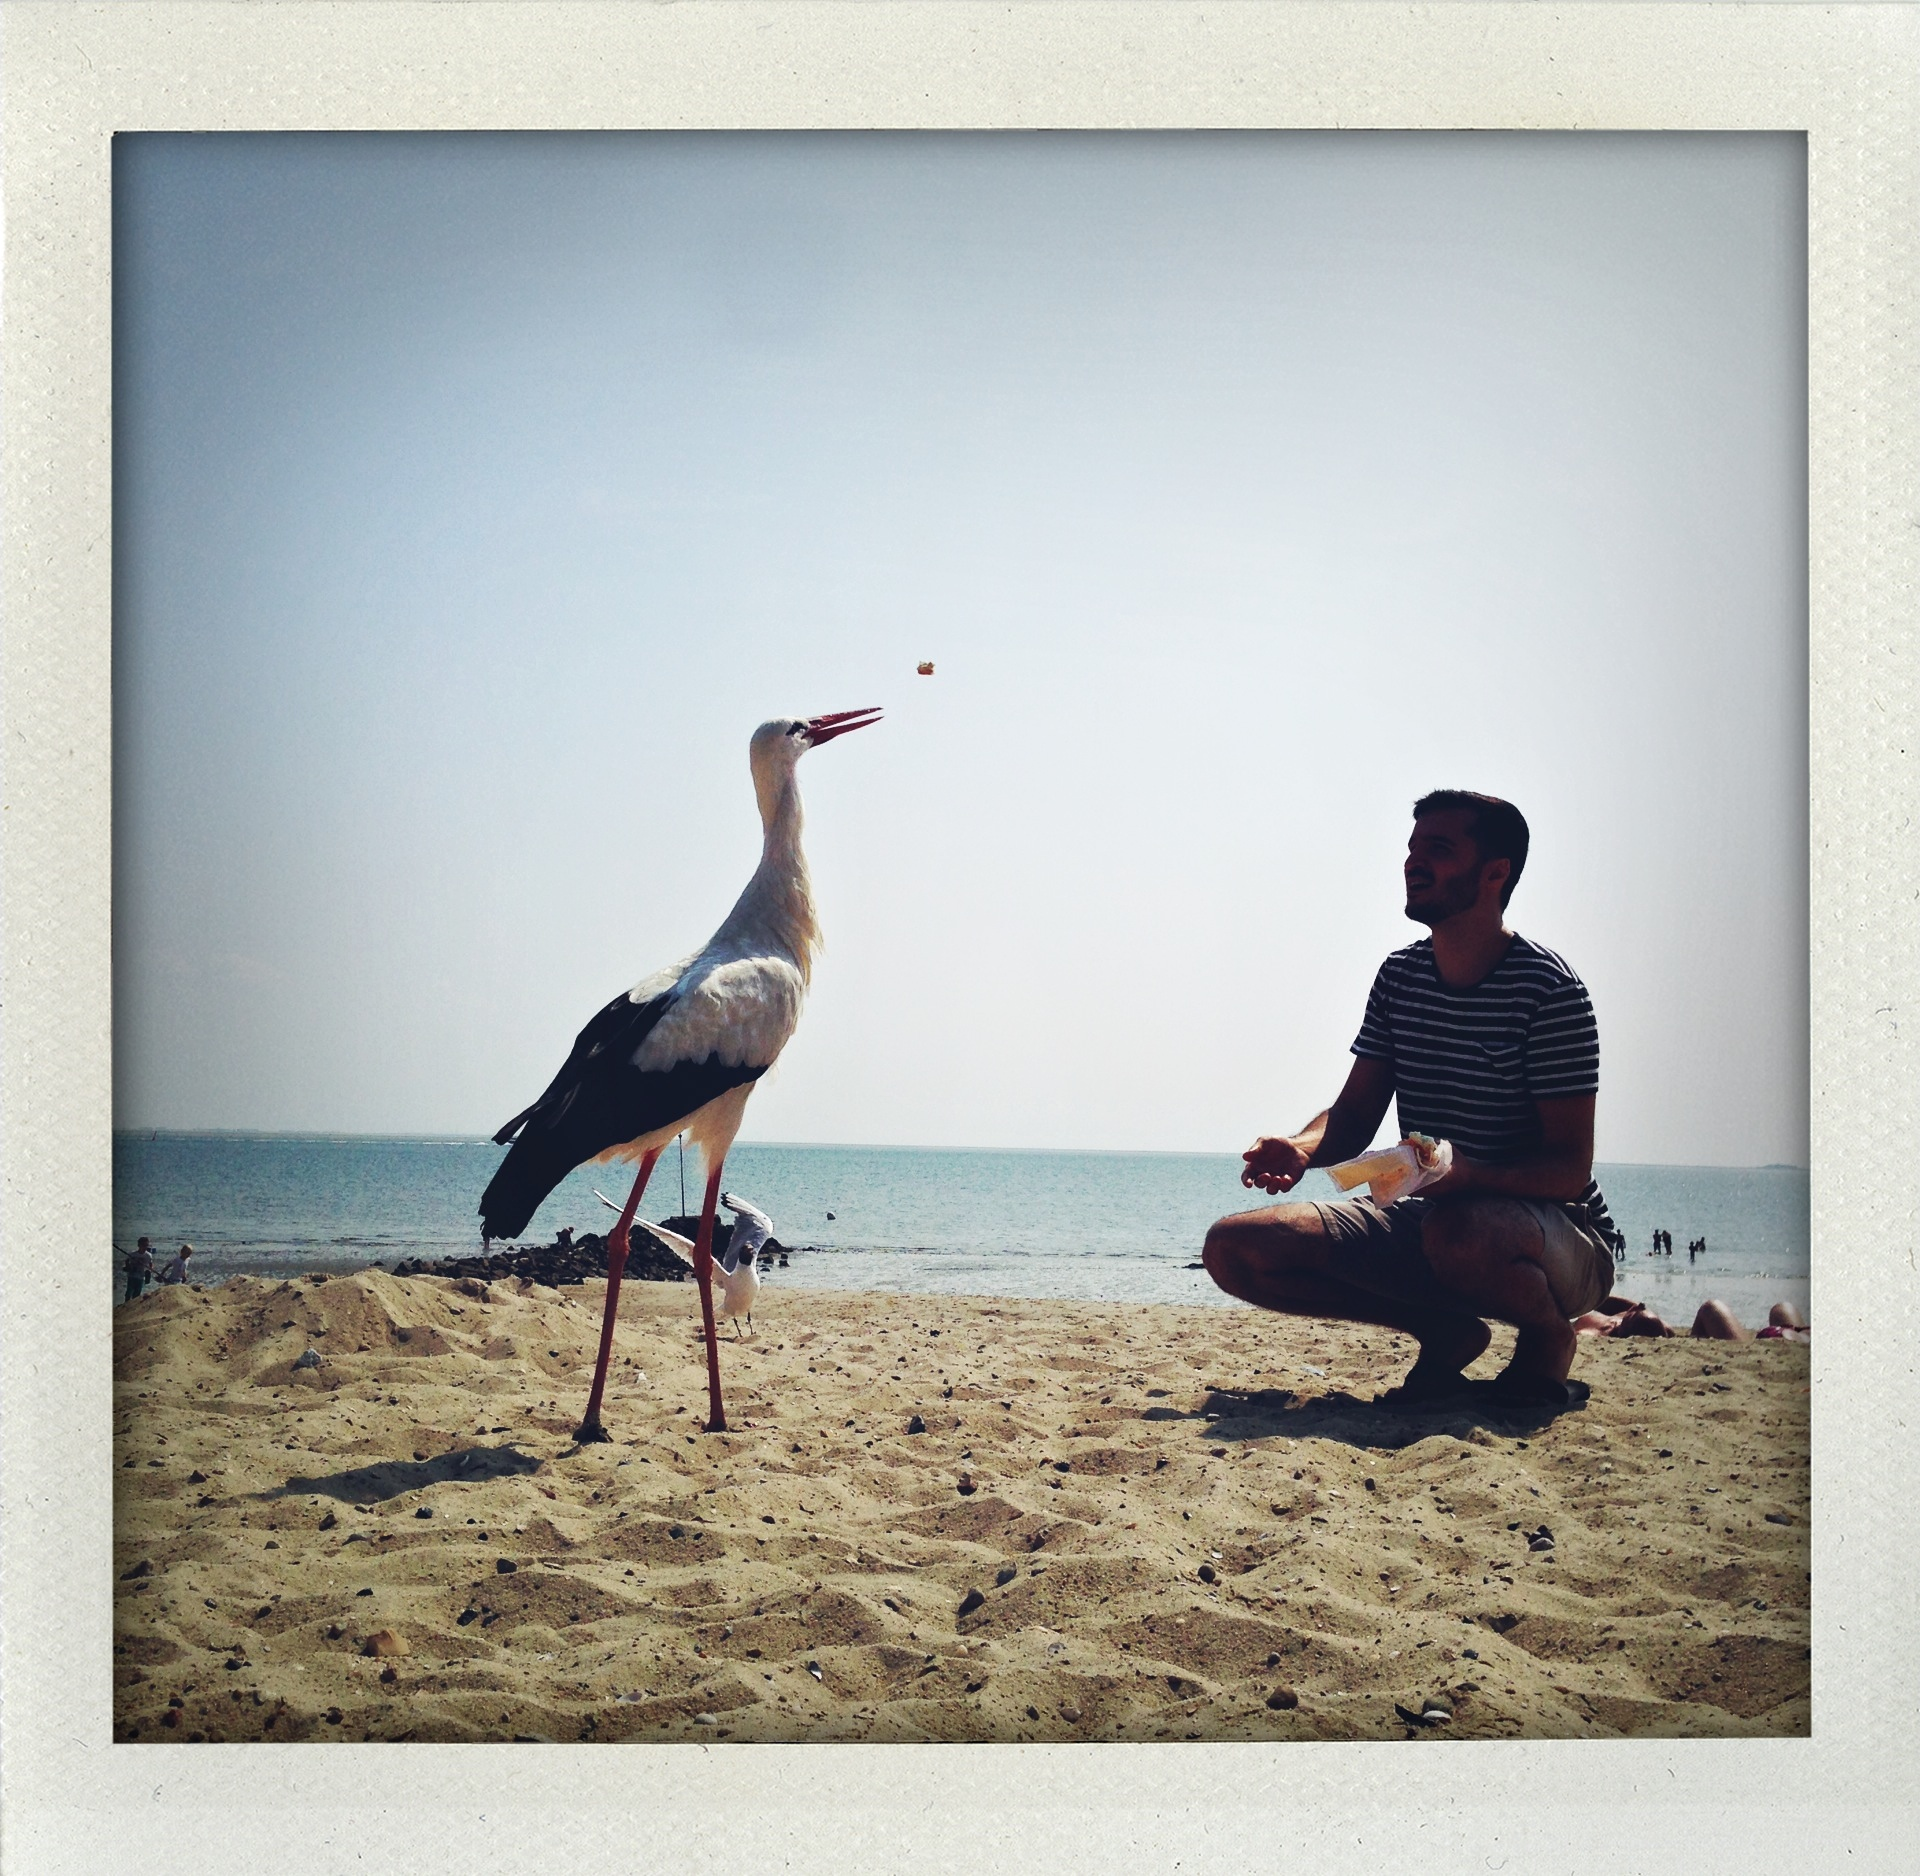 Permission to feed the stork.